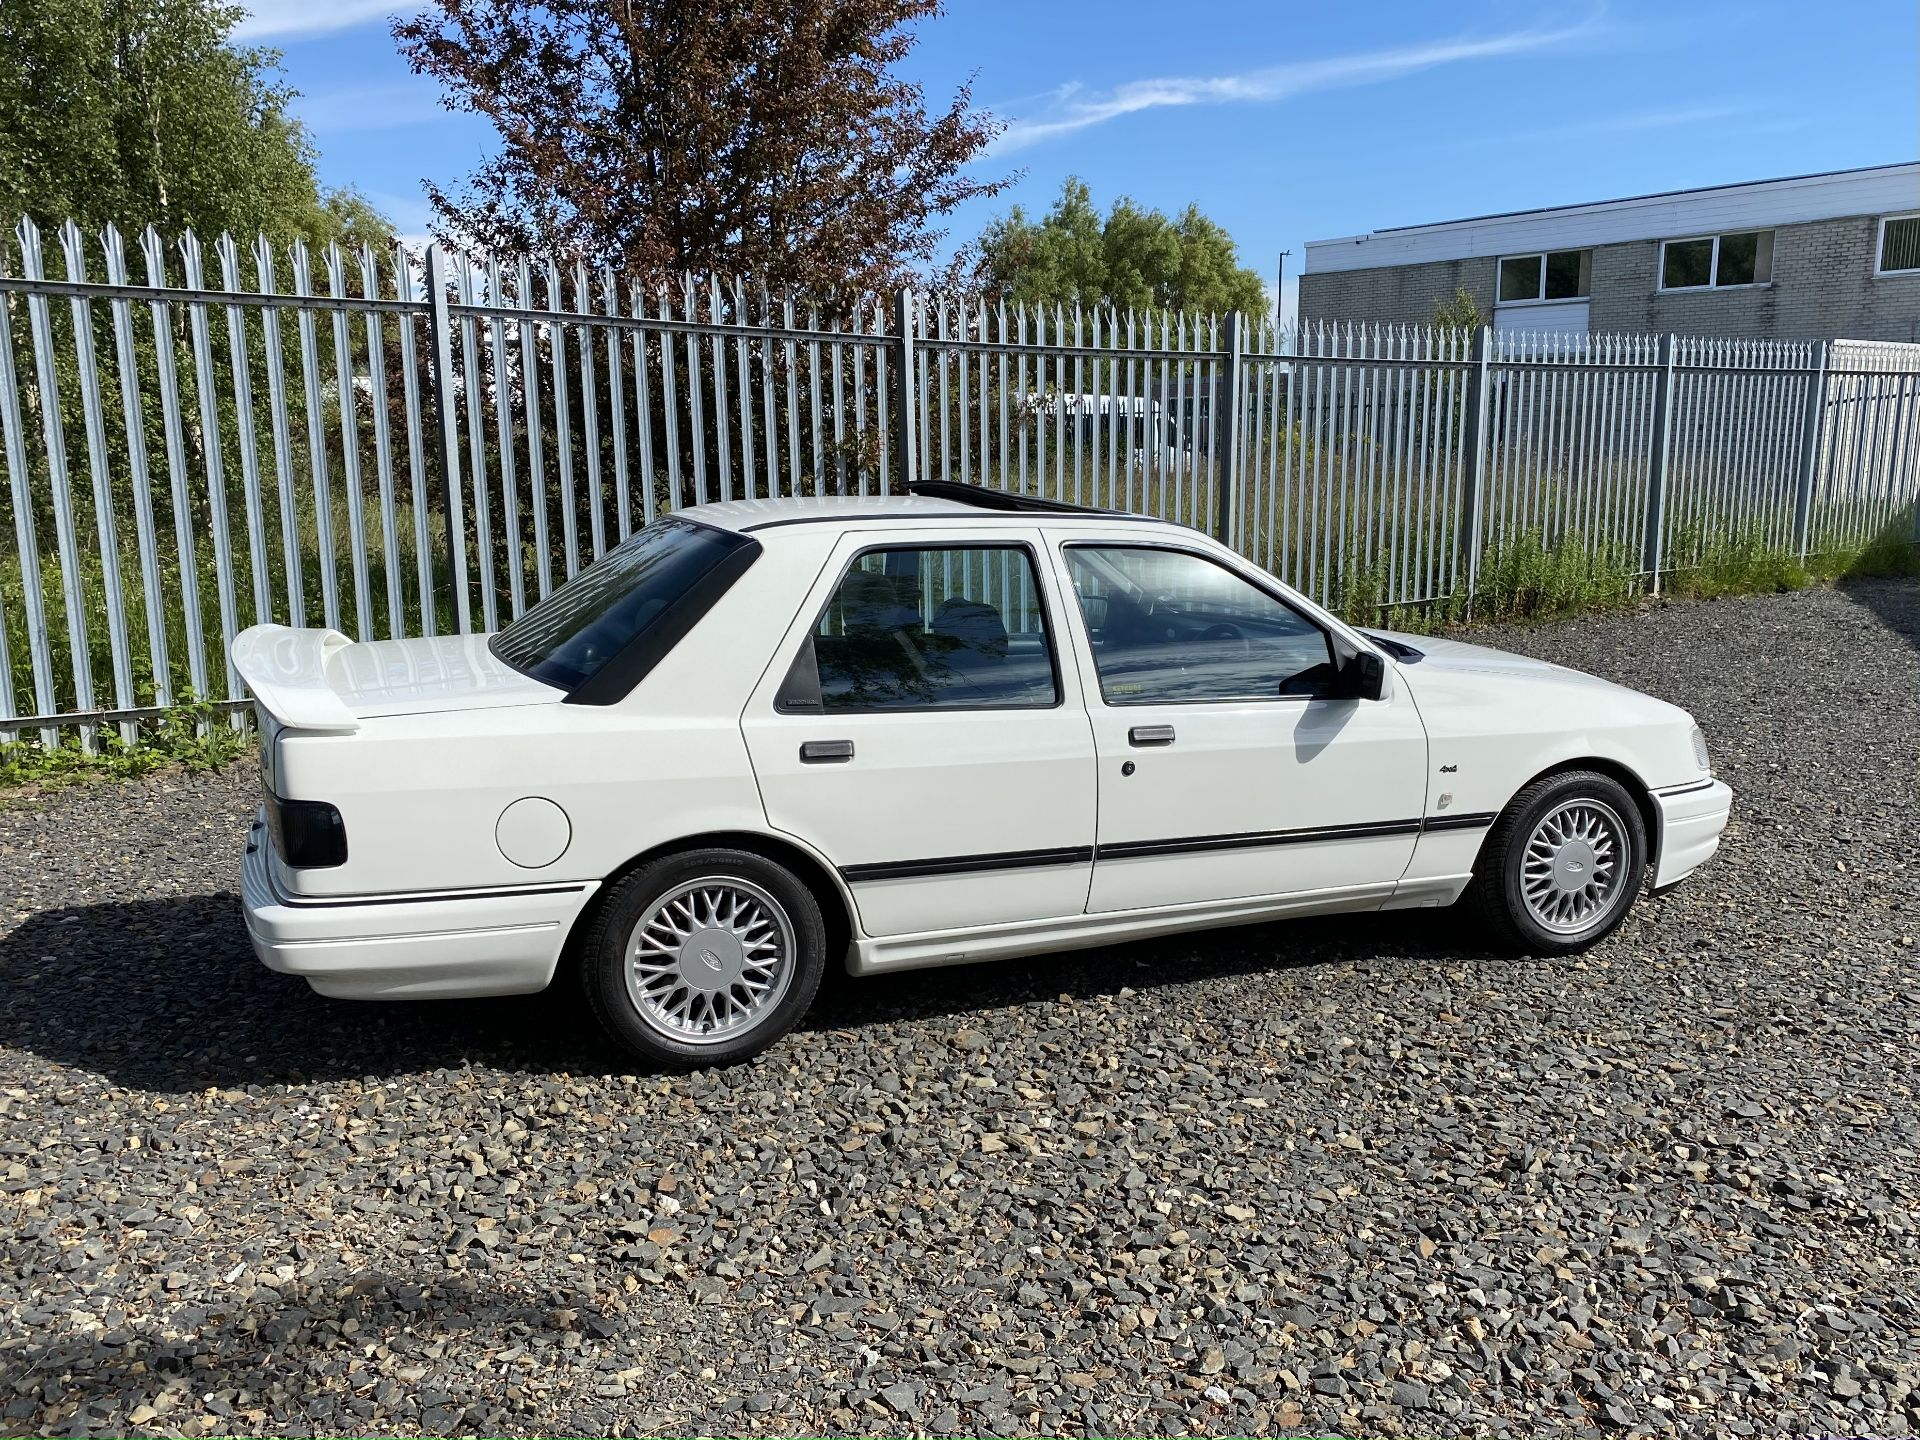 Ford Sierra Sapphire Cosworth 4x4 - Image 5 of 55